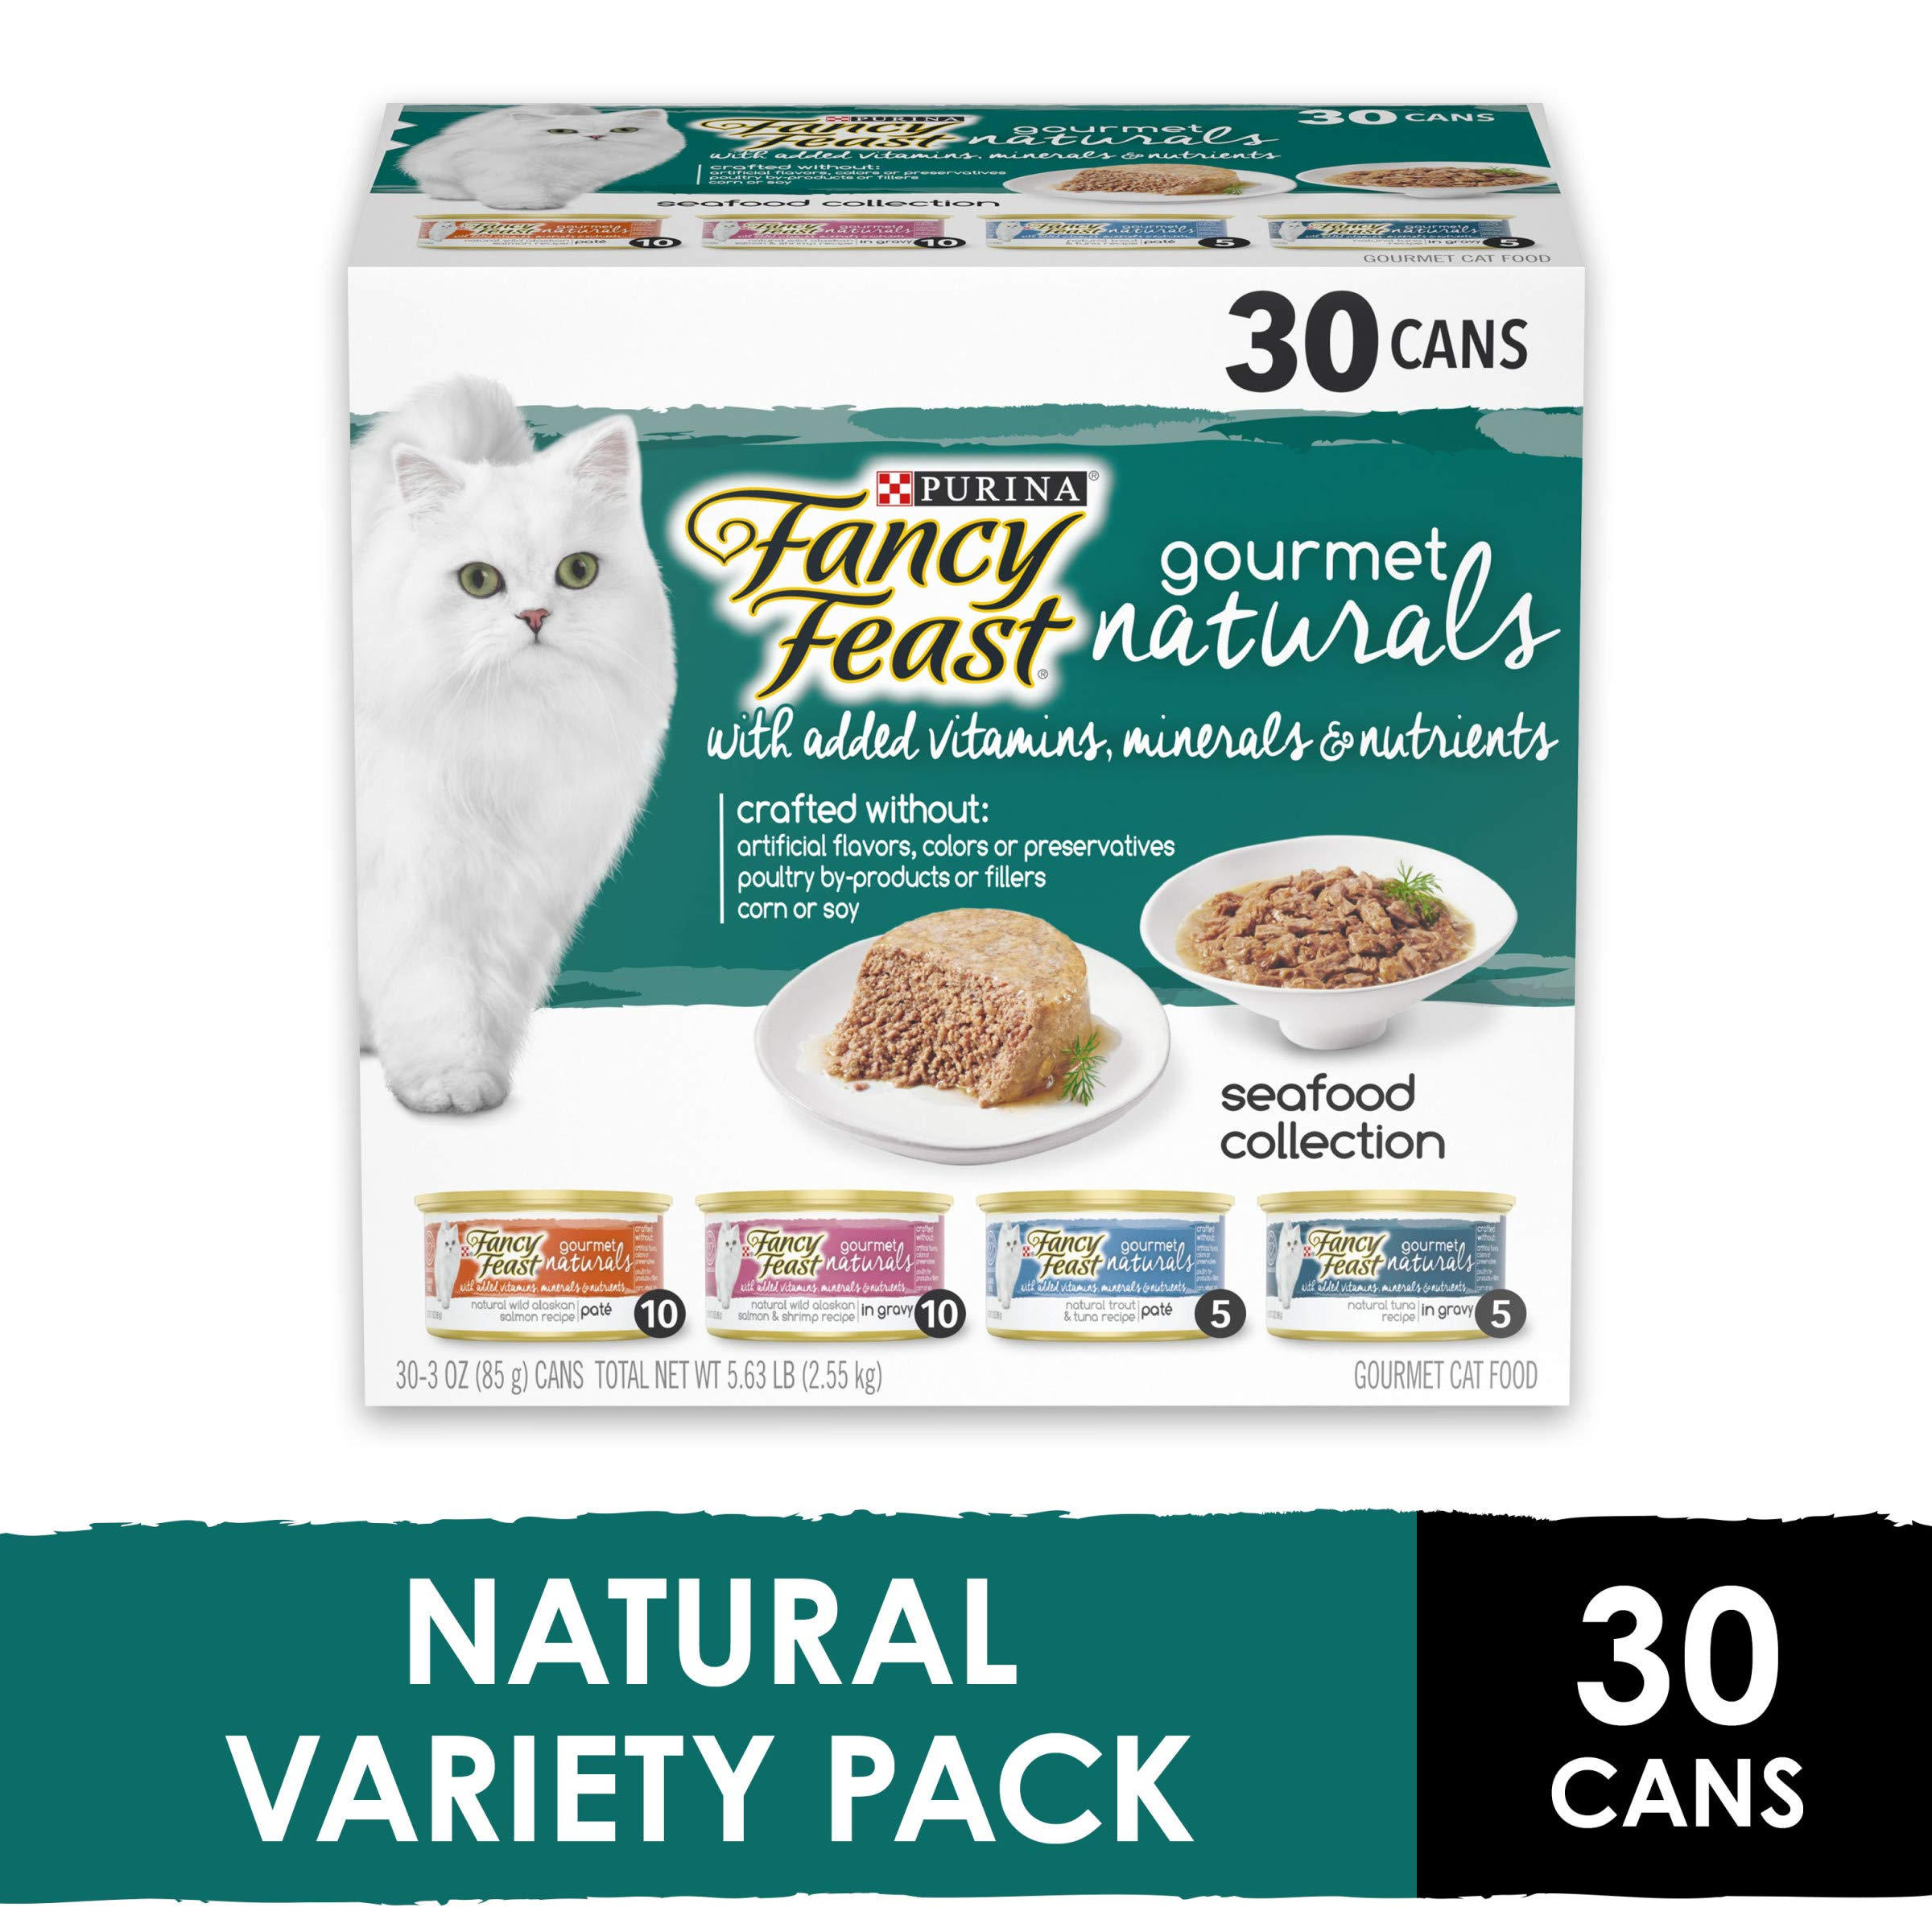 Purina Fancy Feast Natural Wet Cat Food Variety Pack, Gourmet Naturals Seafood Collection - (30) 3 oz. Cans by Purina Fancy Feast